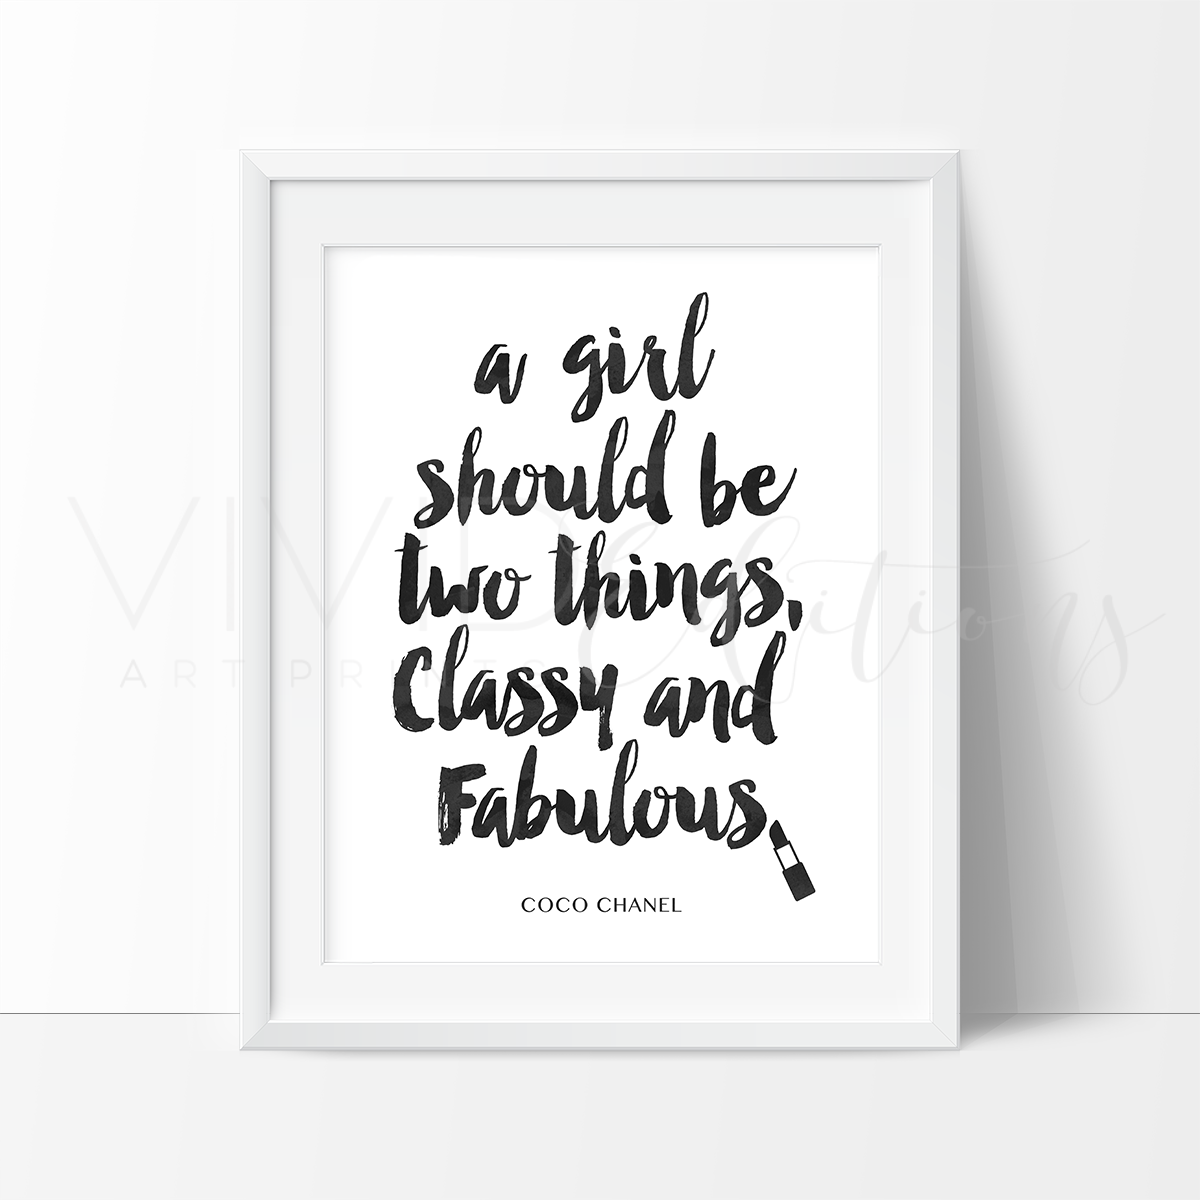 Classy & Fabulous Chanel Quote, Black & White Watercolor Art Print Art Print - VIVIDEDITIONS